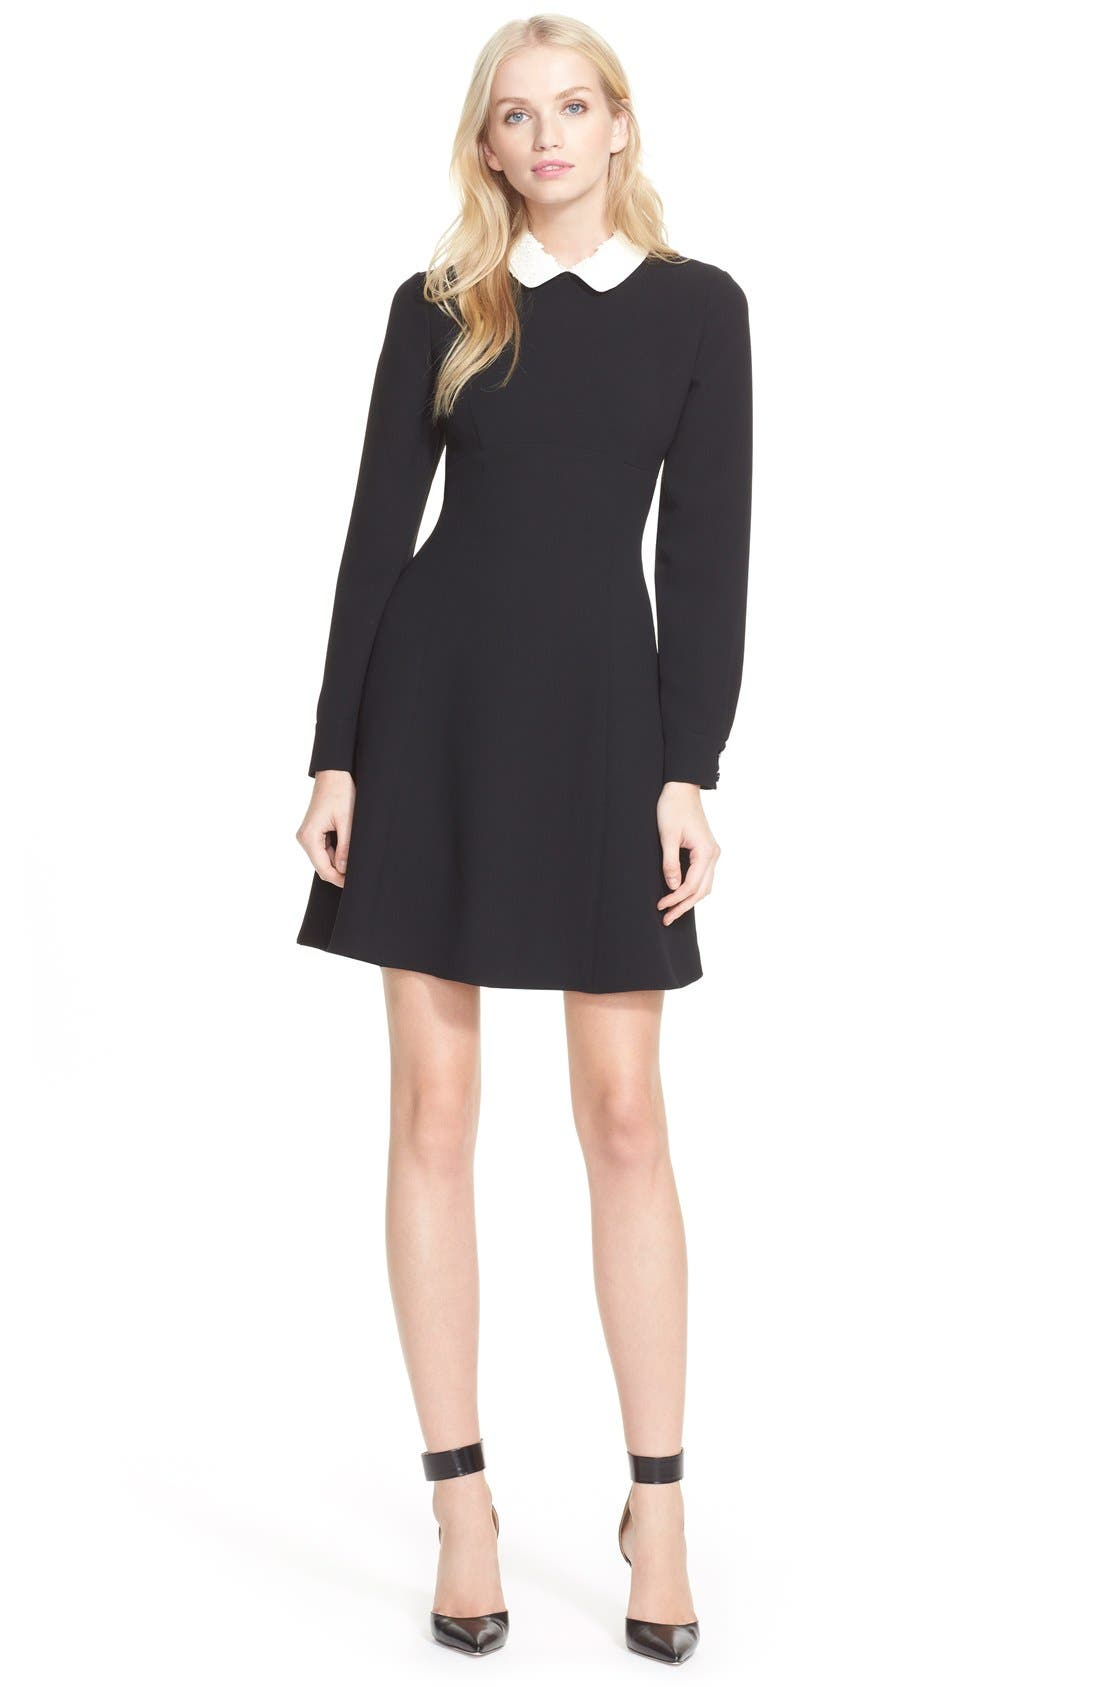 kate spade new york long sleeve sequin collar dress,                             Main thumbnail 1, color,                             001